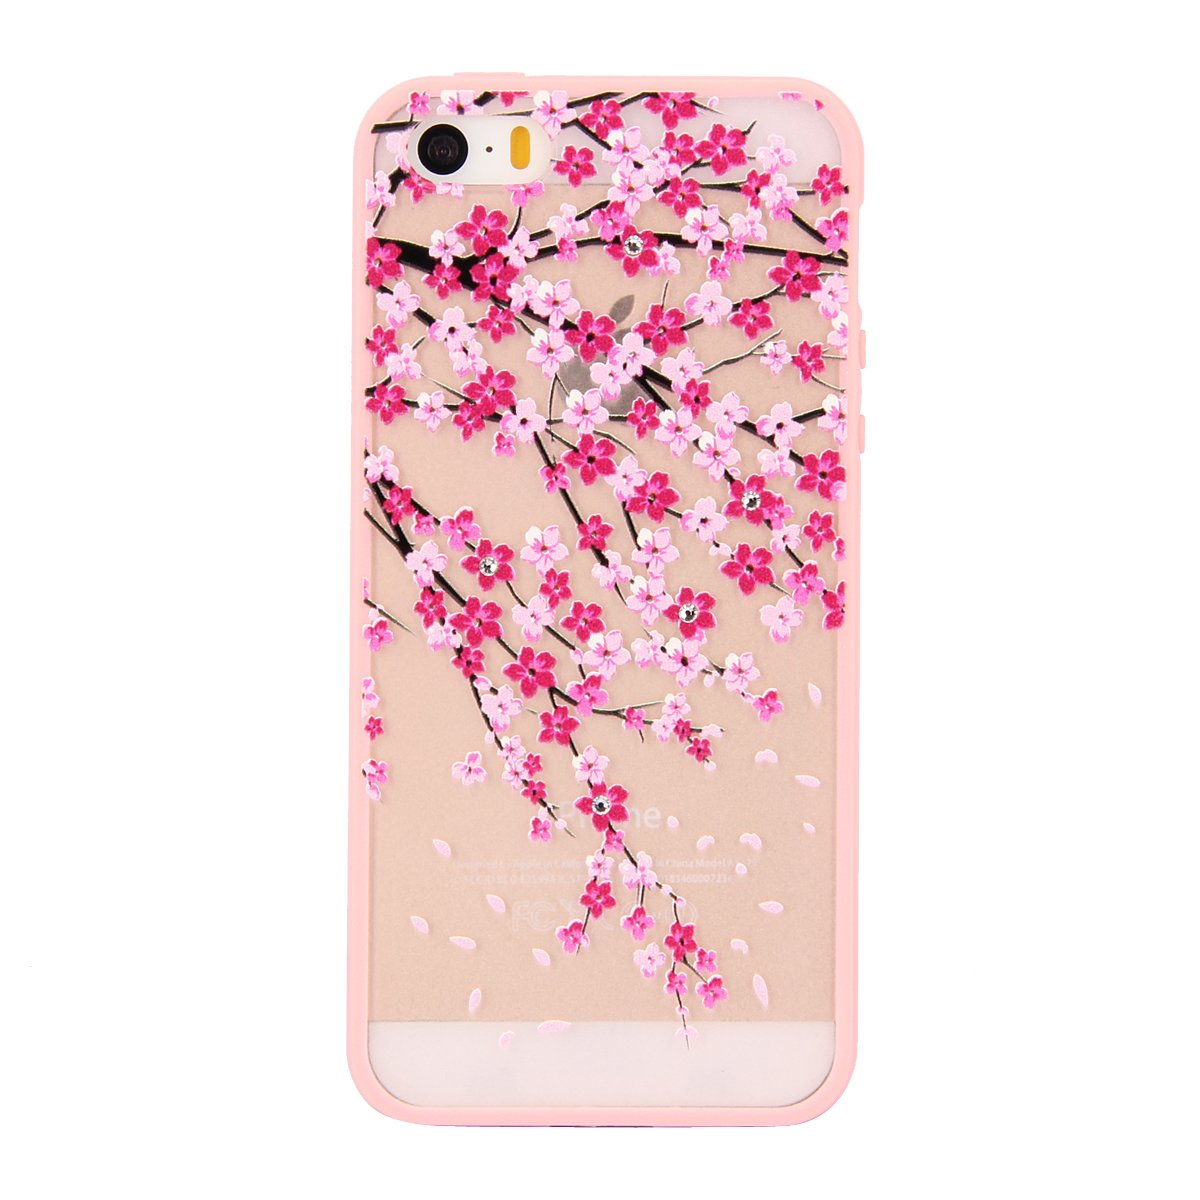 IKASEFU Diamond Hard Back Case for iPhone 5/5S,Pretty Pink Bloosom Flower Design Crystal Clear Shiny Hard Back Case Cover Rubber Frame for iPhone 5/5S -Pink Bloosom Flower